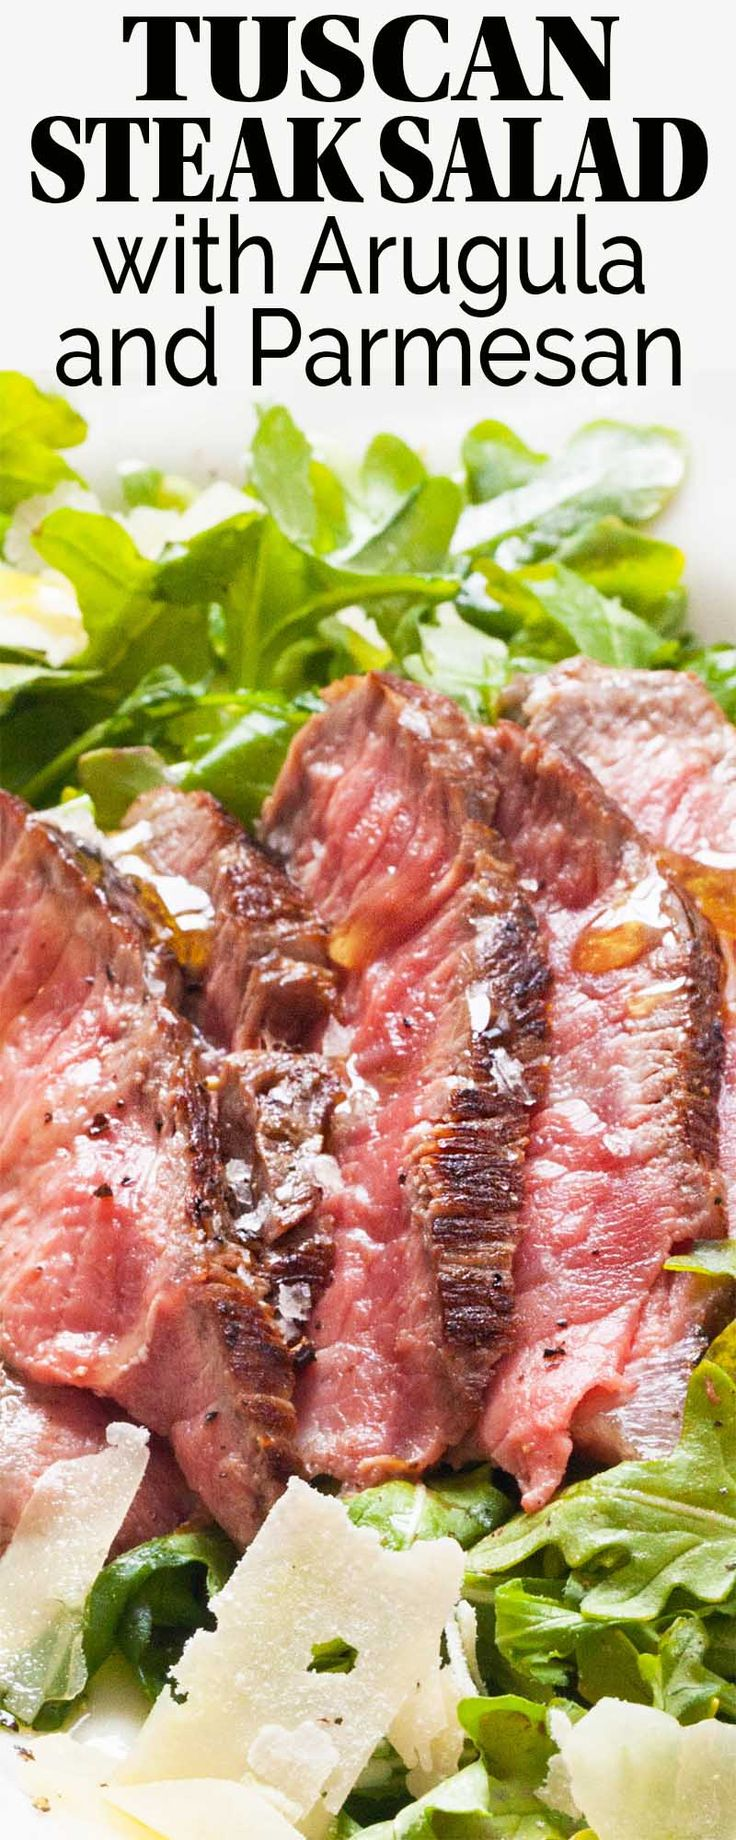 Grilled steak salad with arugula salad and flaky Parmesan Cheese from Frigo! A simple, fresh summer meal in the Italian tradition. Best eaten outside with friends and a bottle of wine. #sponsored